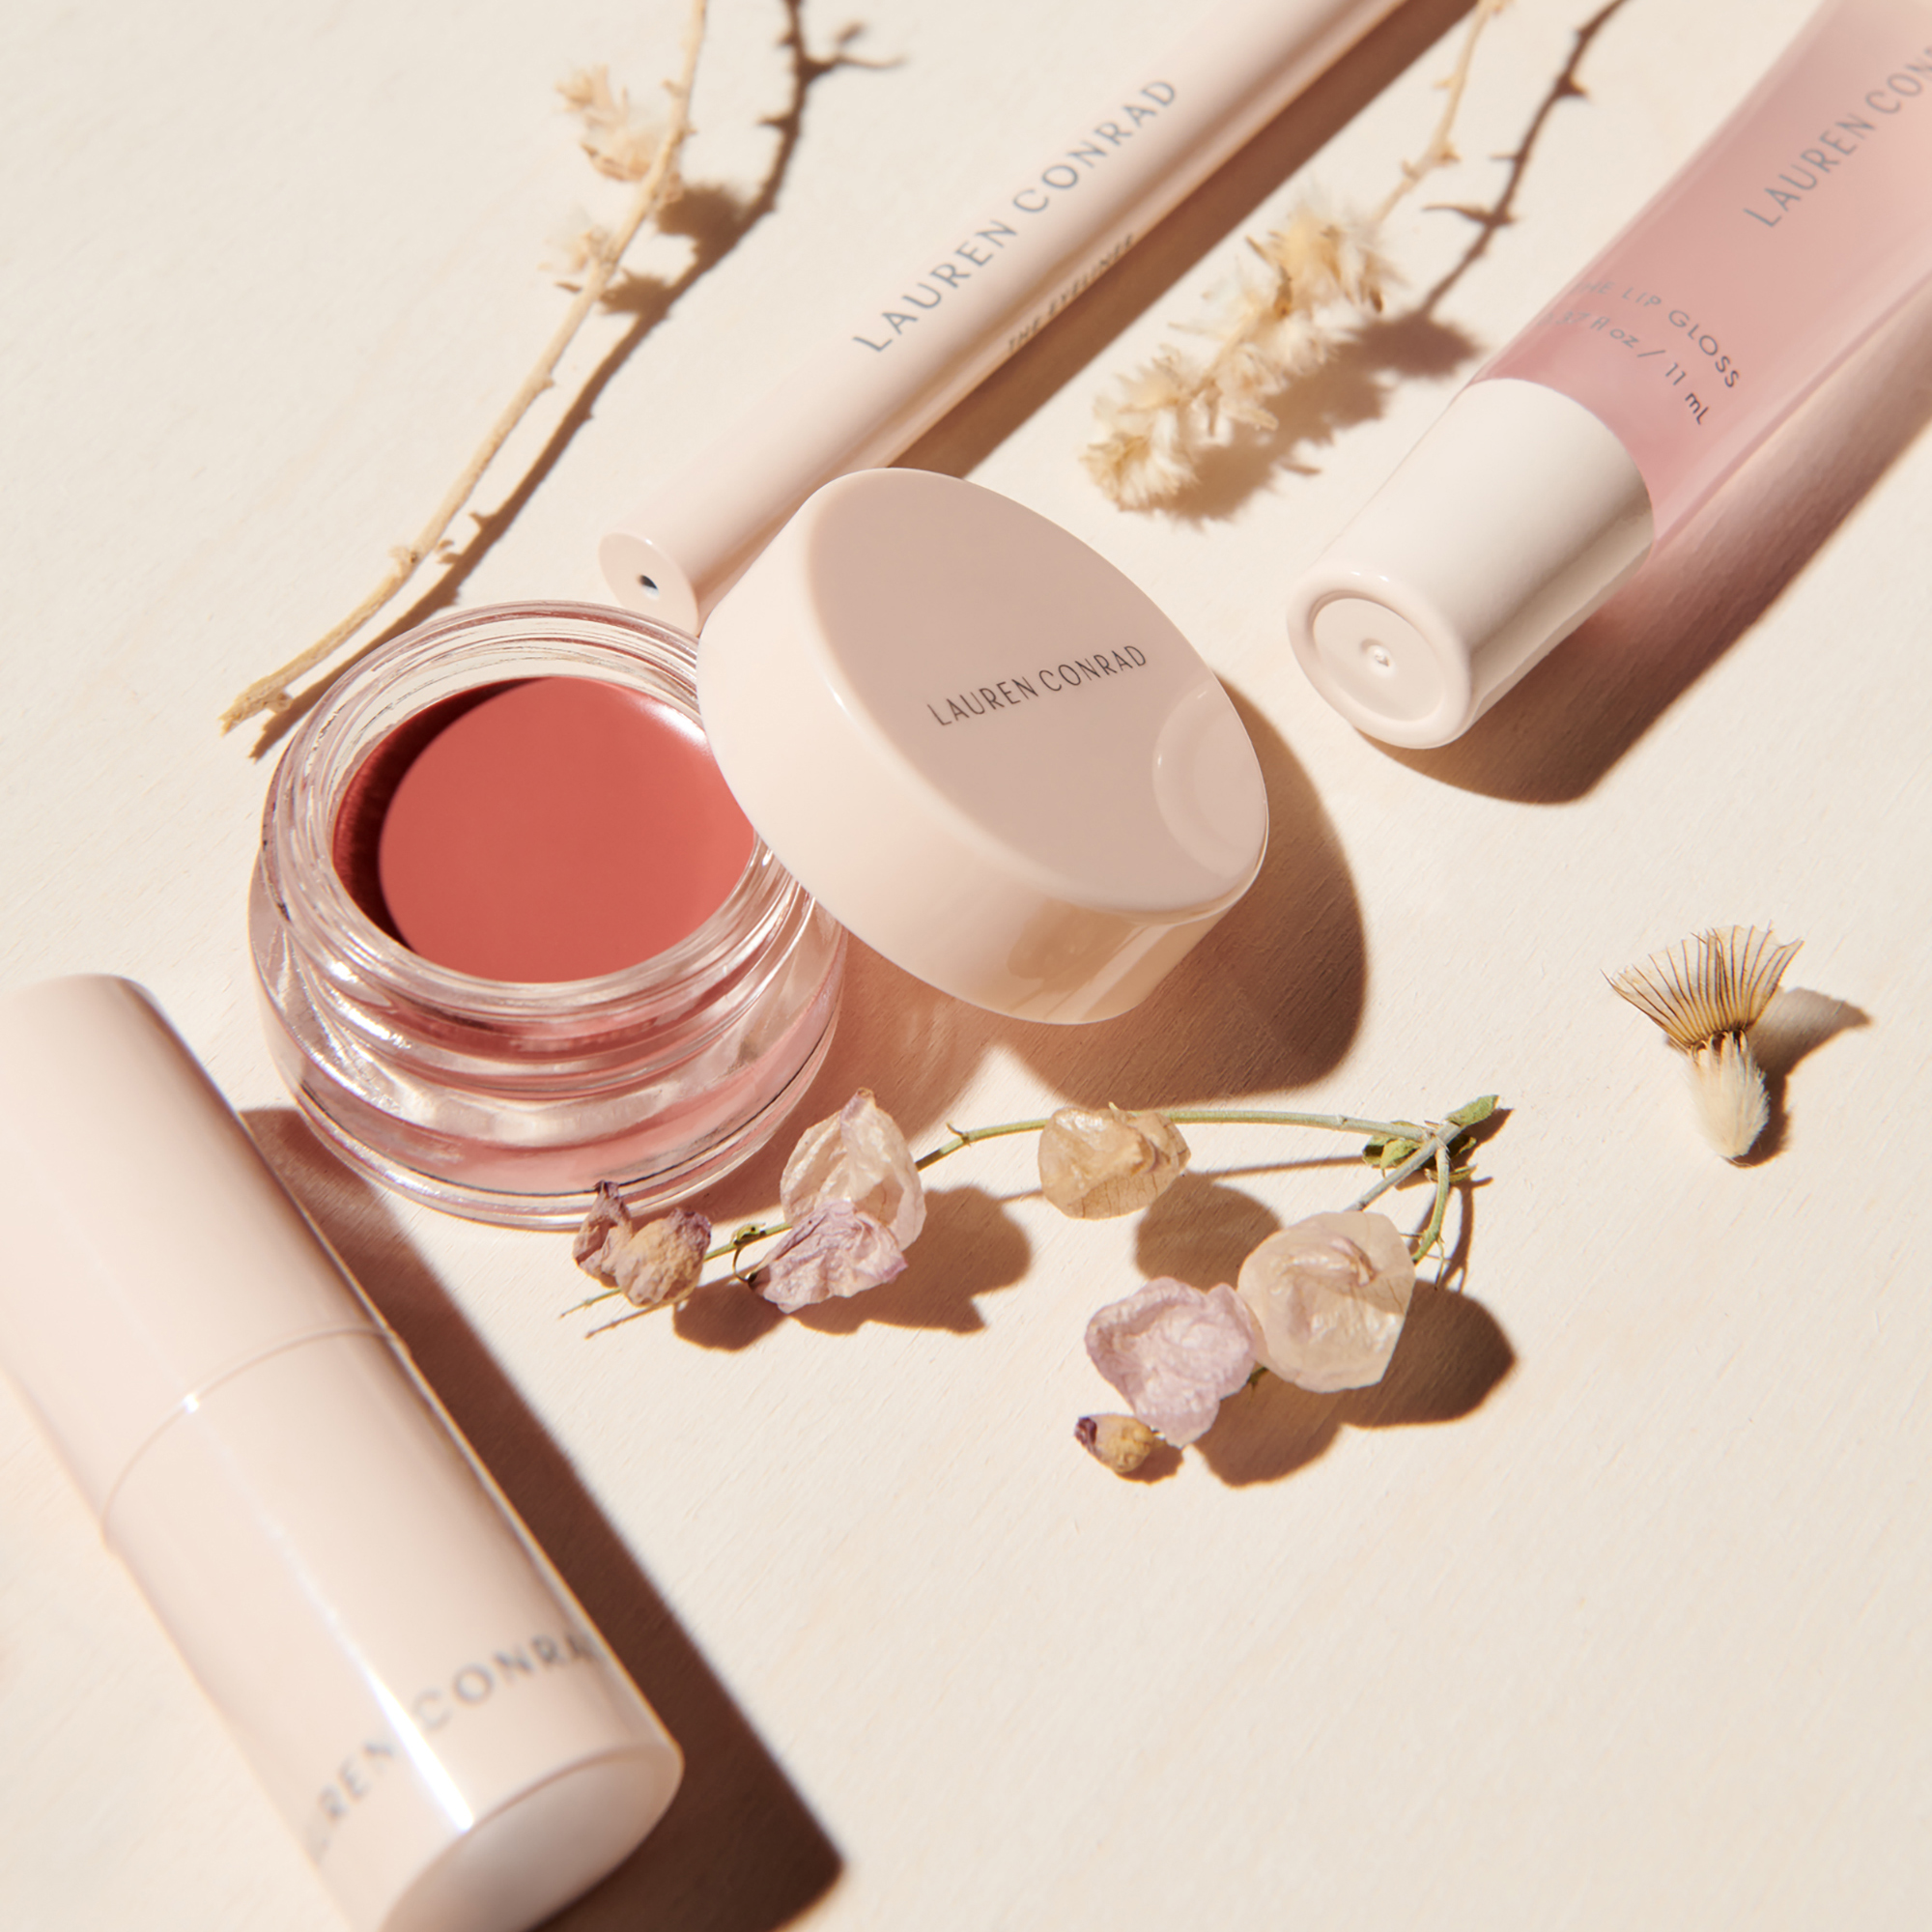 Meet My New Beauty Line: Lauren Conrad Beauty